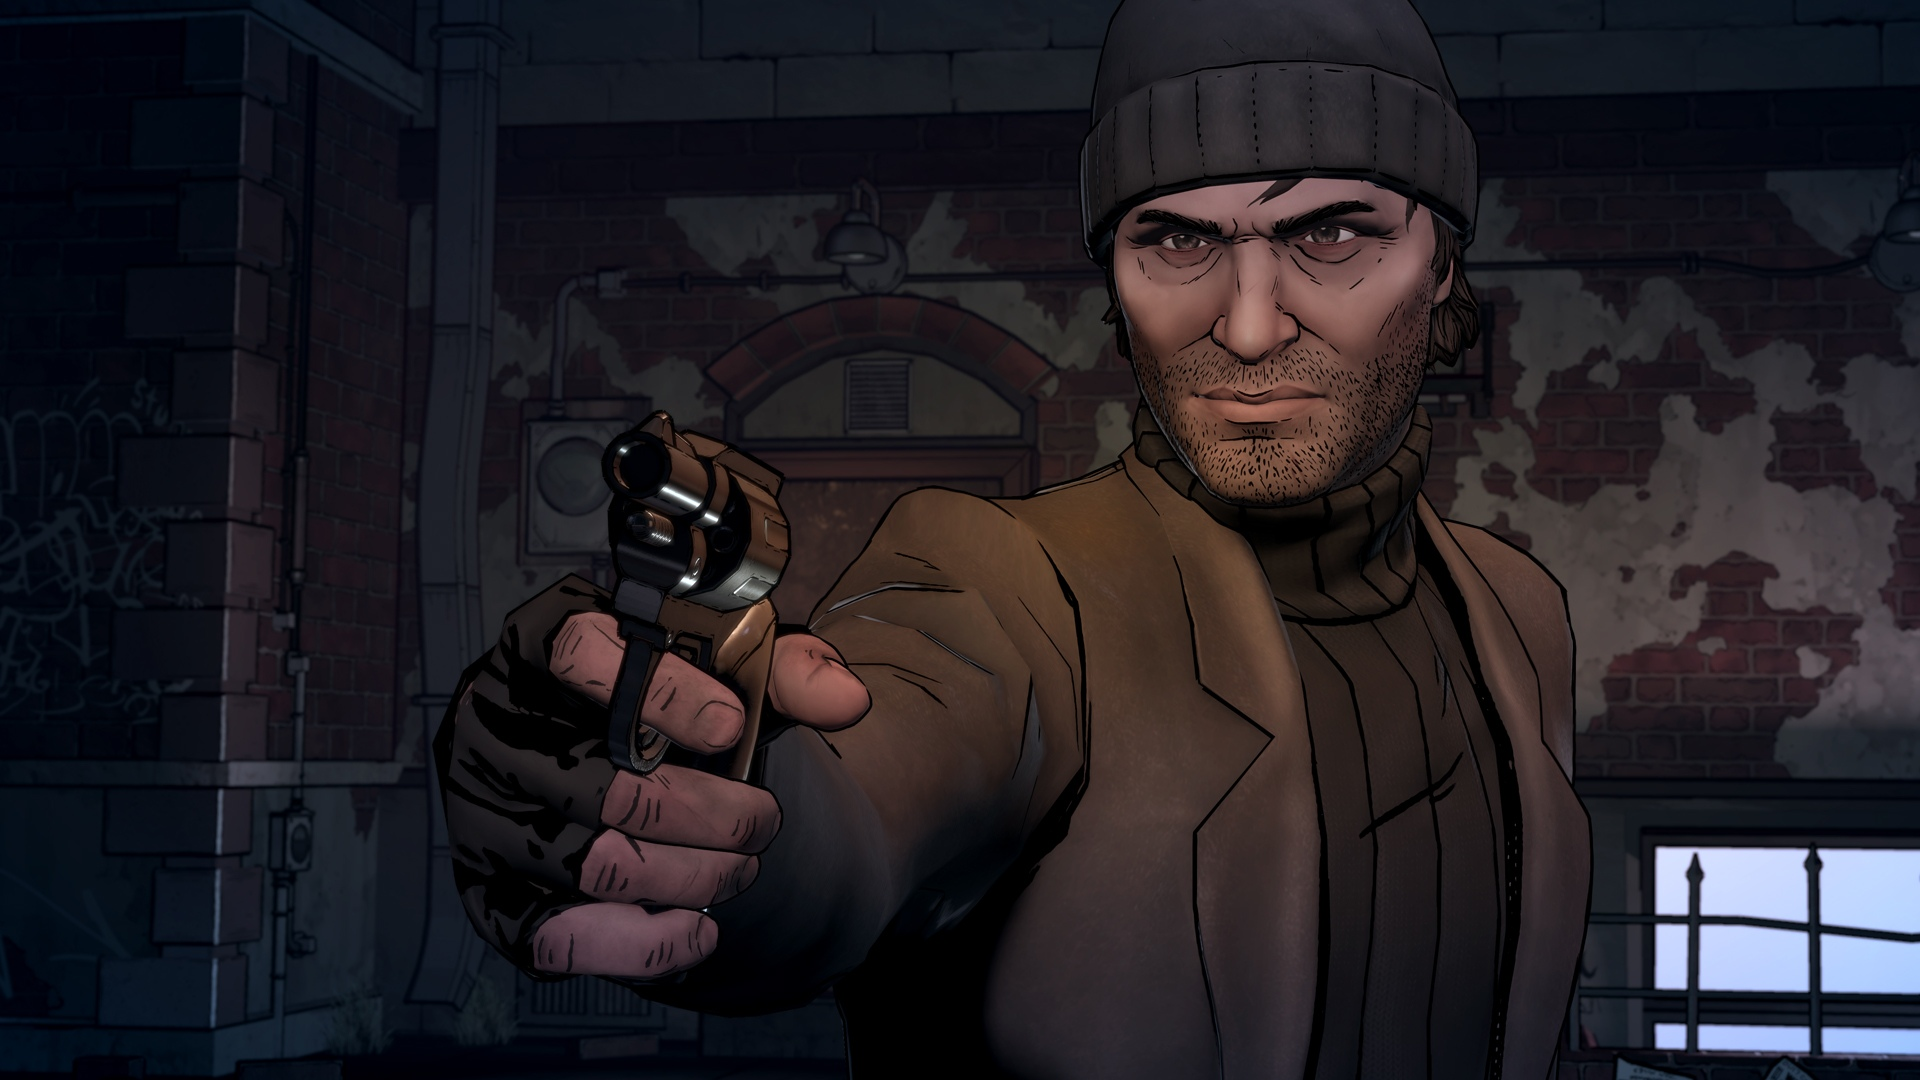 Joe Chill (Batman: The Telltale Series)